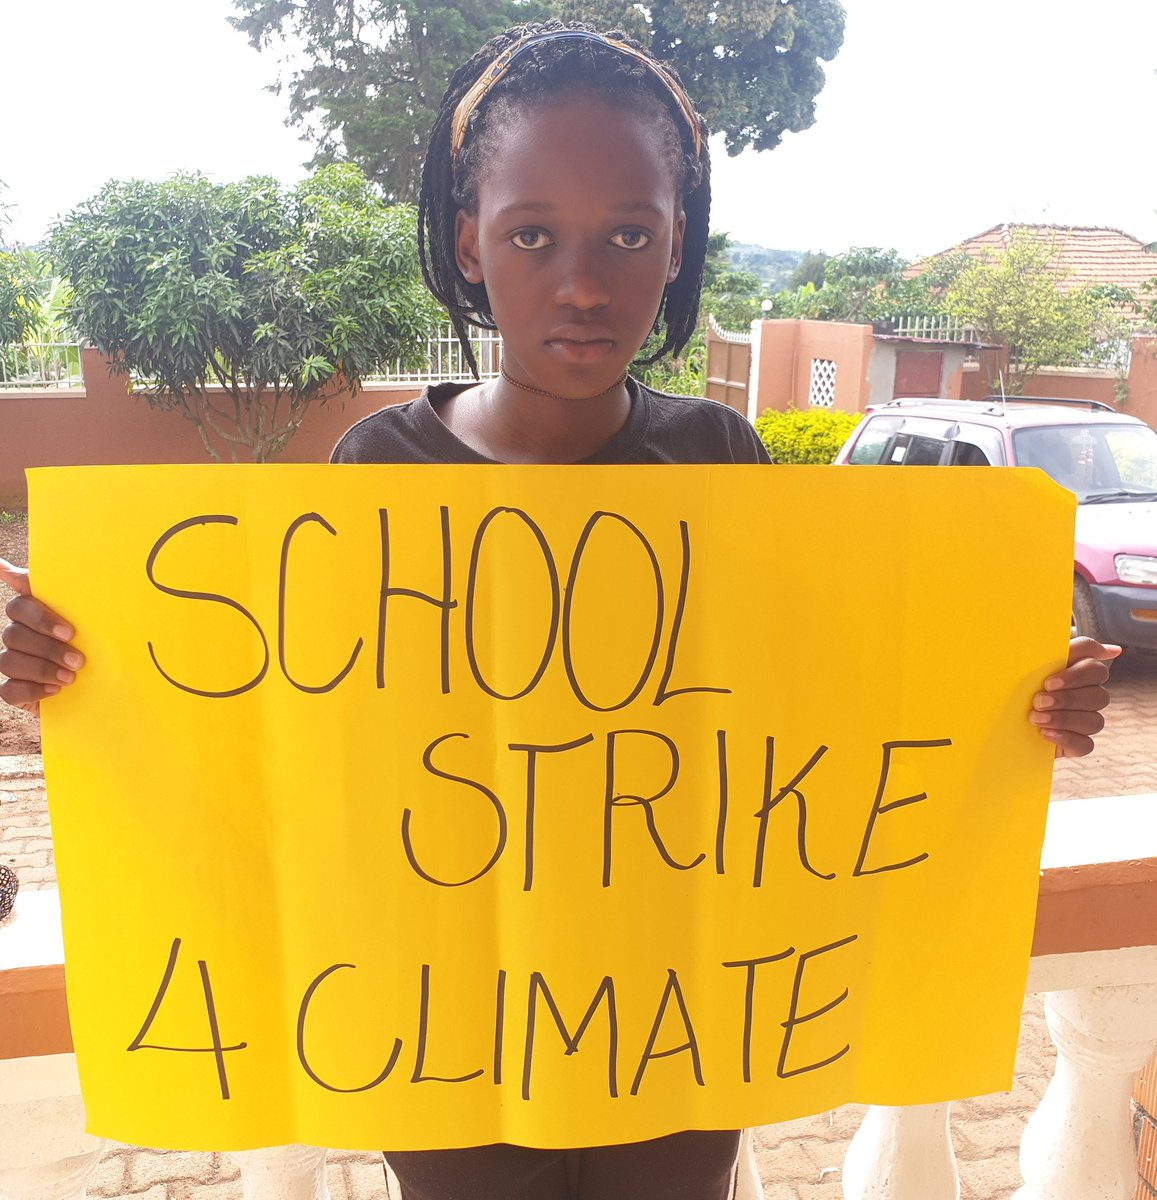 It's a new year but same old crises. Week 40 #schoolstrike4climate #FridaysForFuture